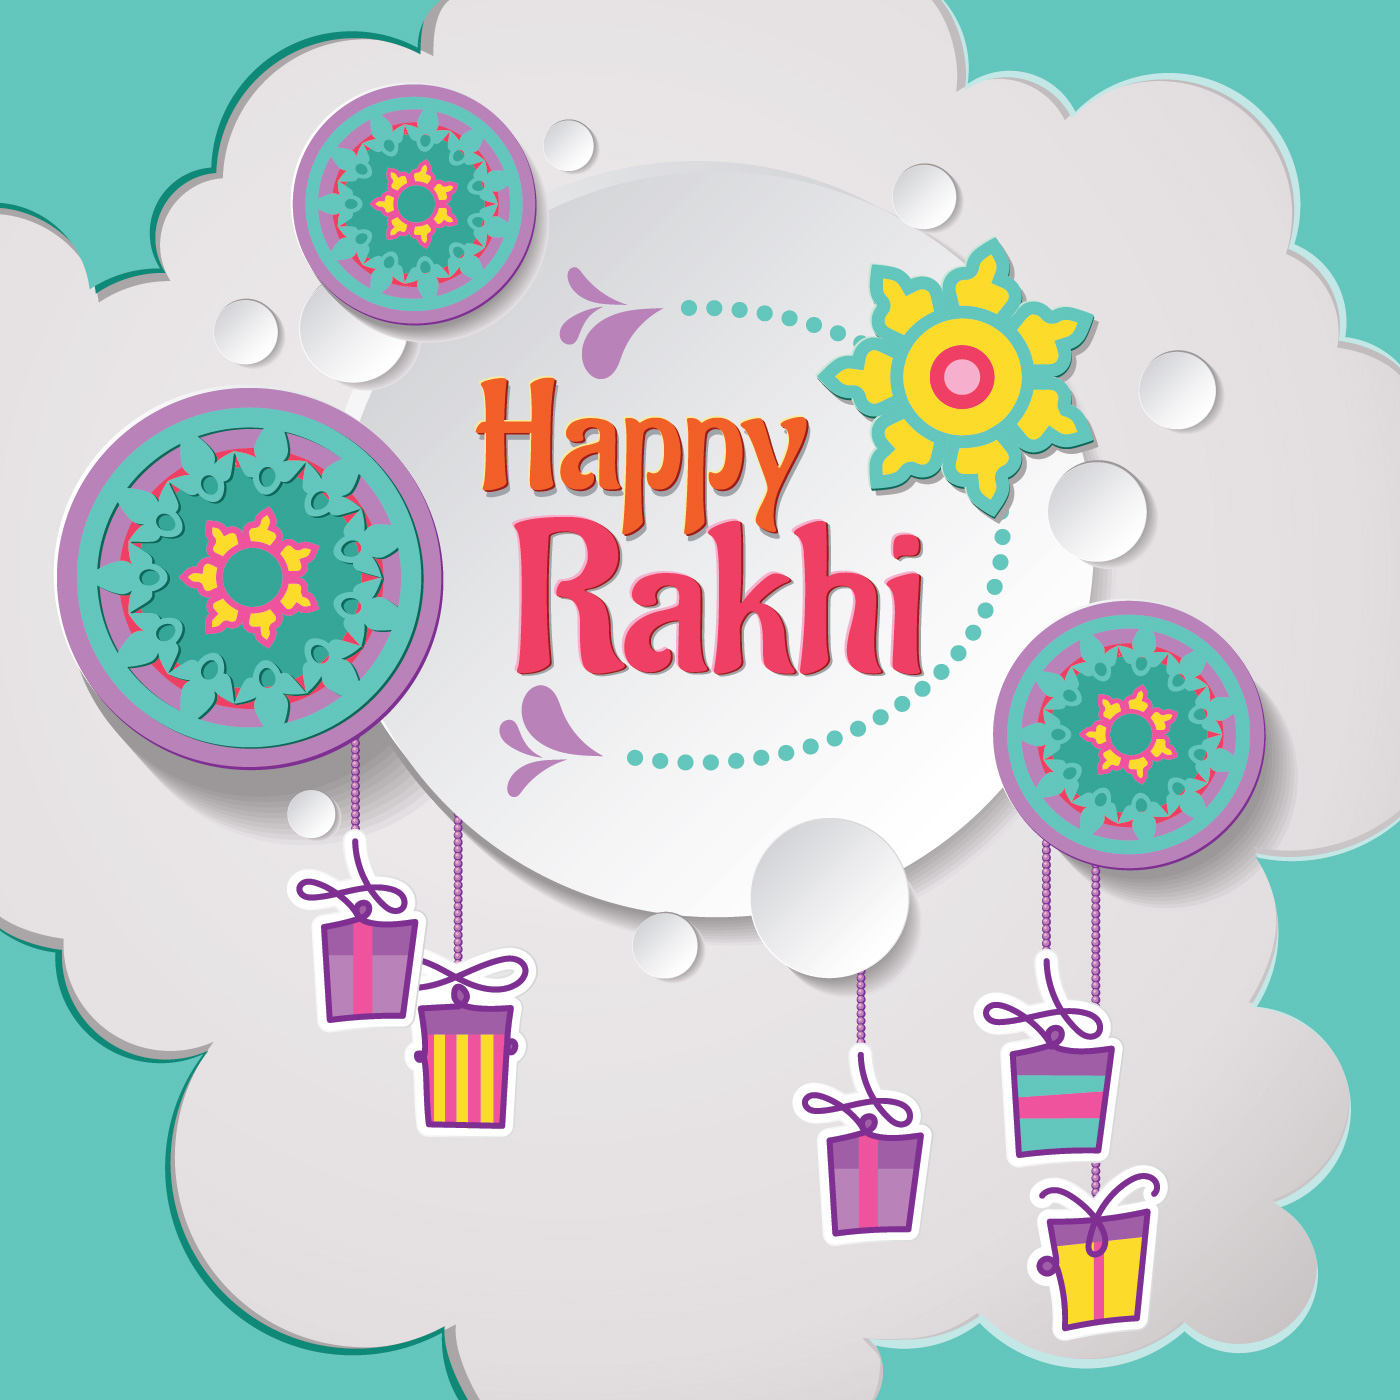 Happy Rakhi Card With Paper Cut Style